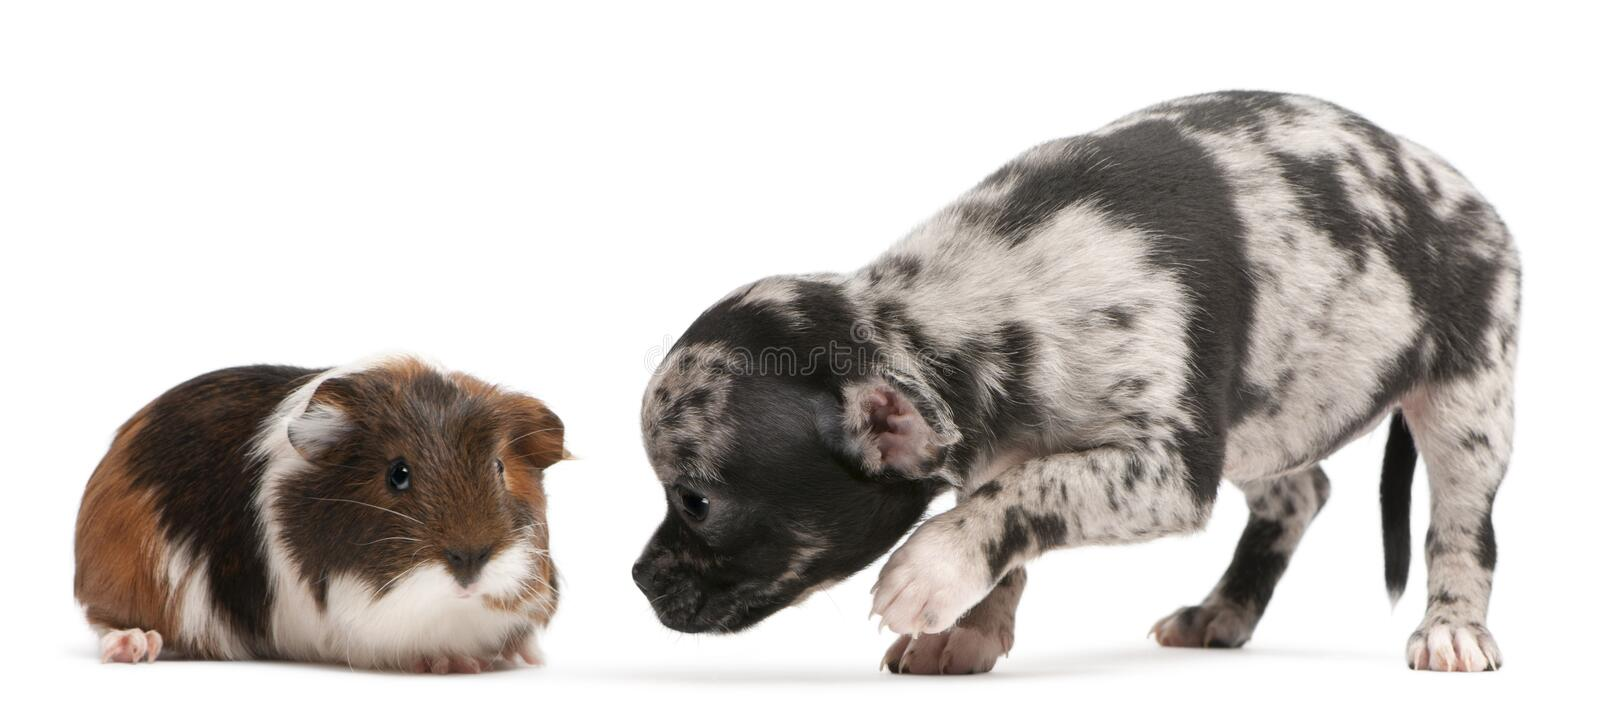 Download Chihuahua Puppy Interacting With A Guinea Pig Royalty Free Stock Photography - Image: 17597377